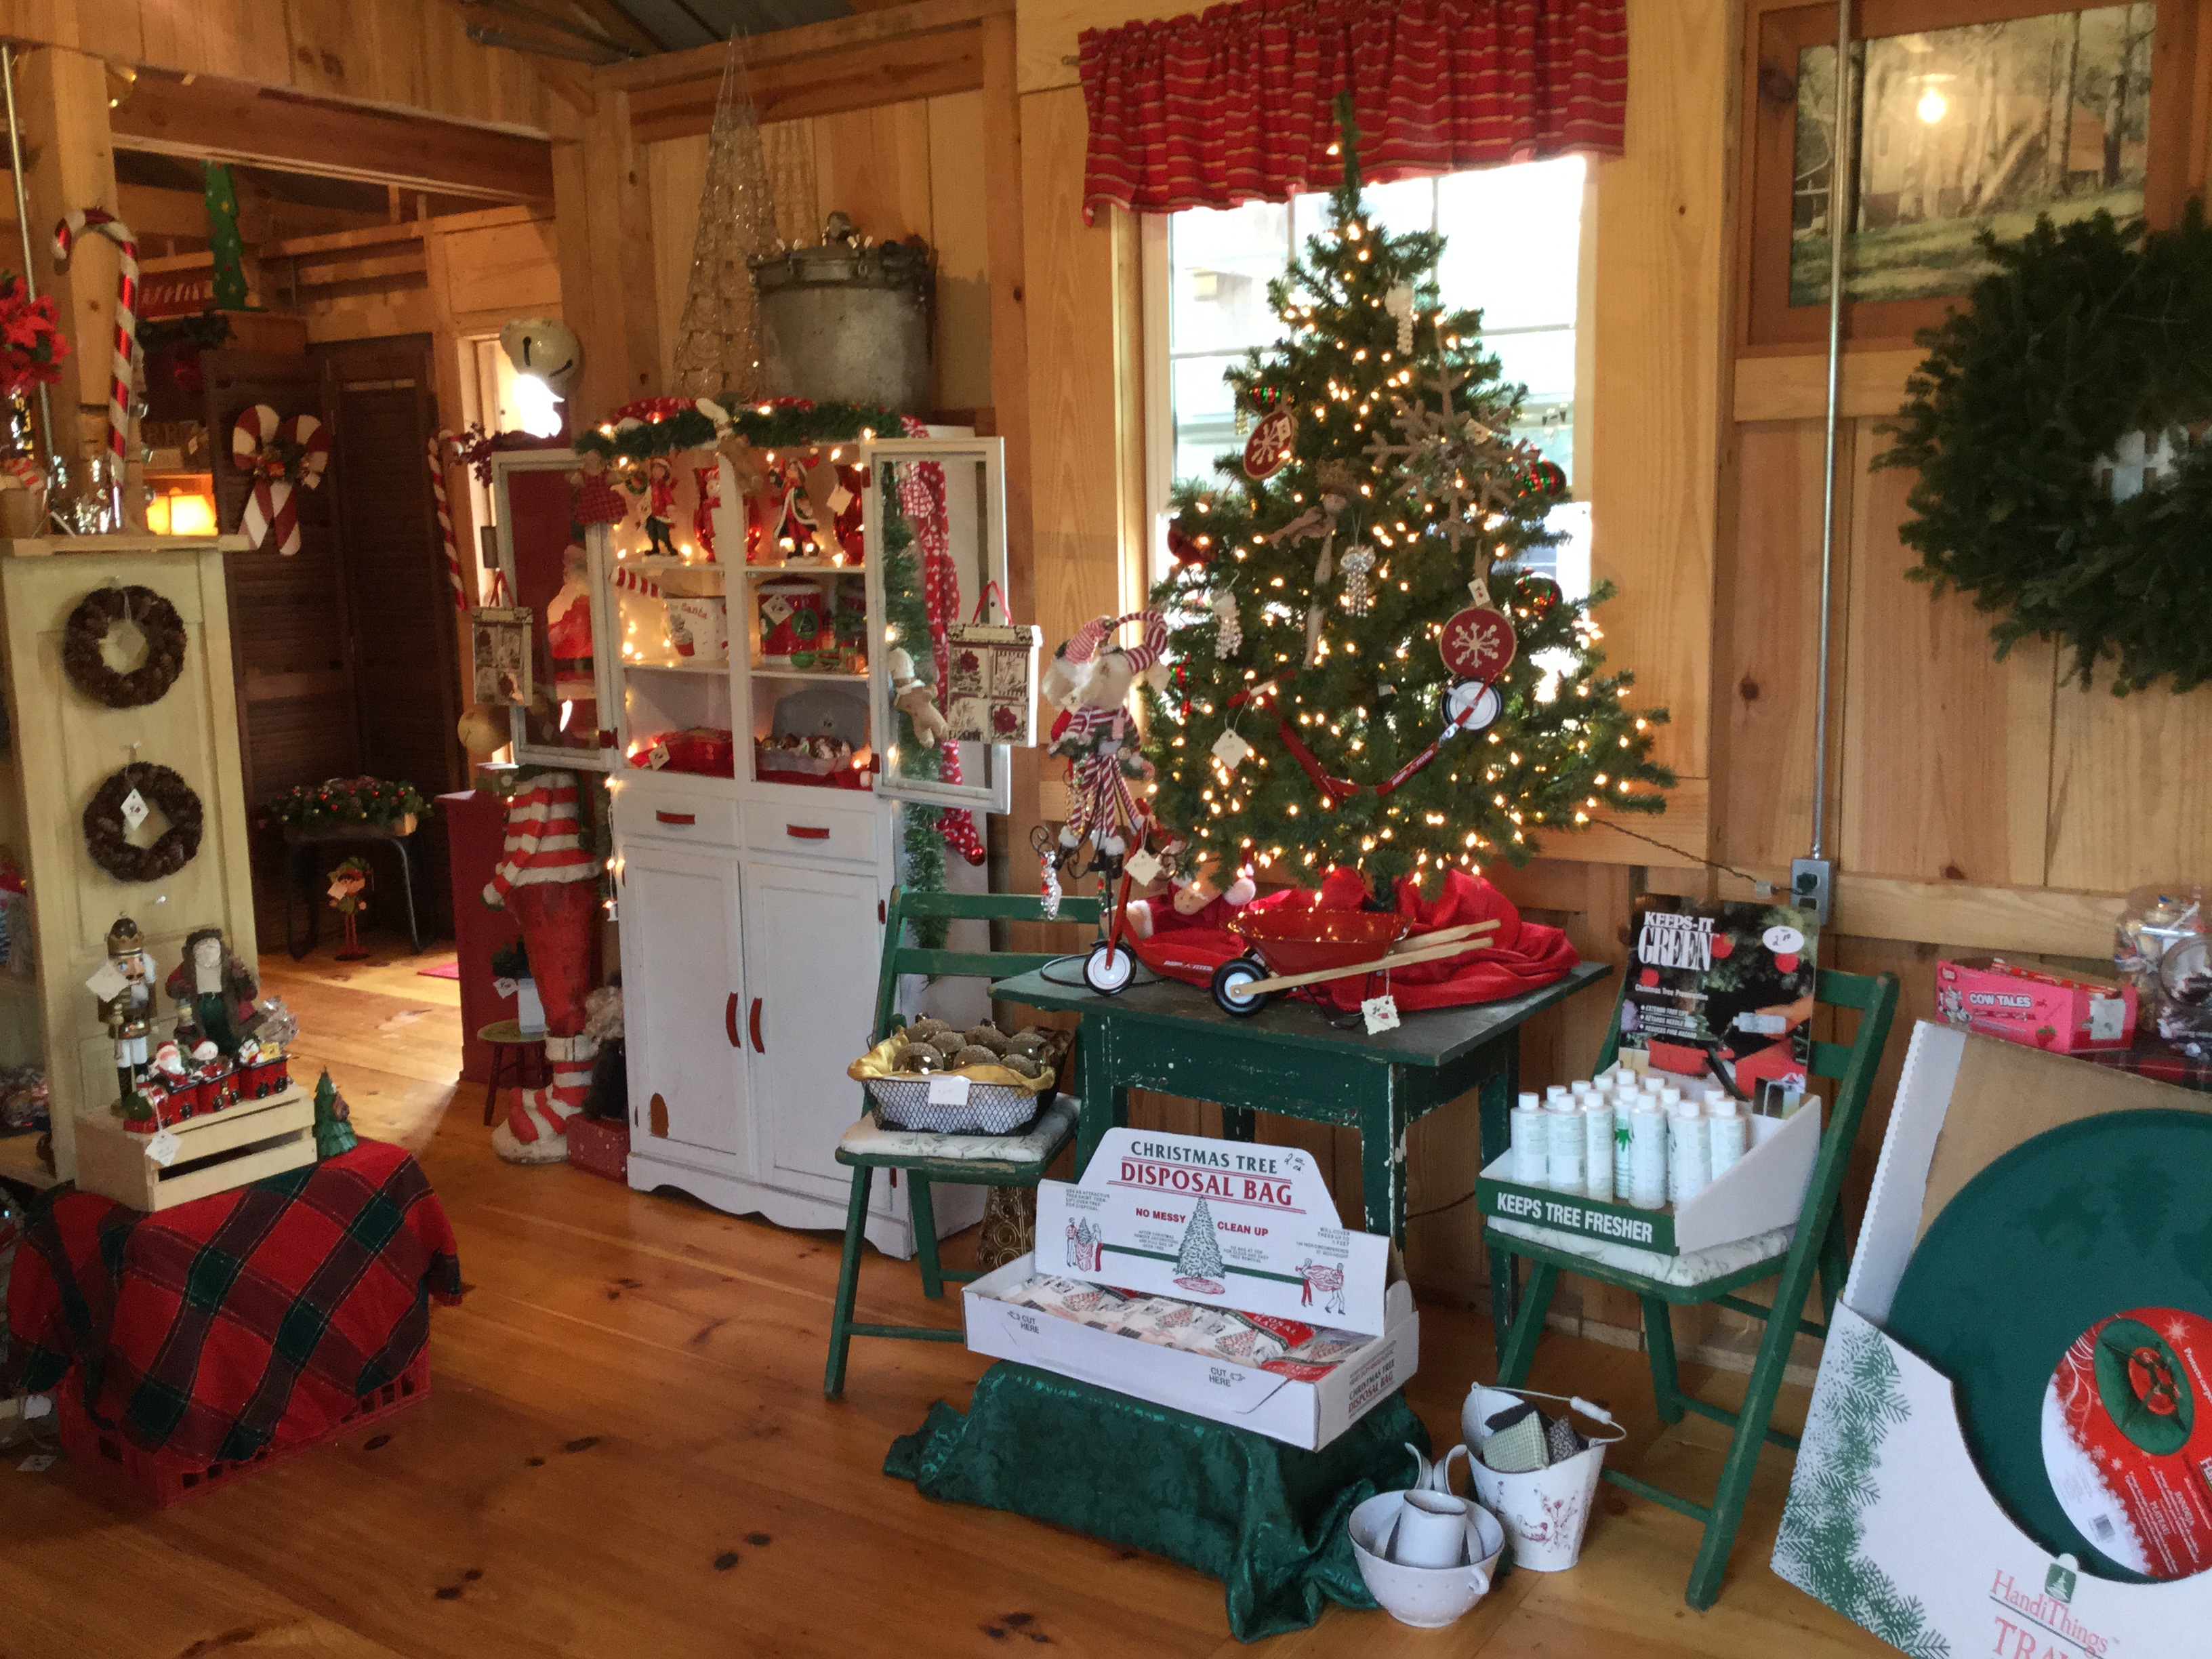 welcome to the old barn christmas tree farm a family operation located in sunny side georgia we open thanksgiving day and have several varieties of - How To Start A Christmas Tree Farm